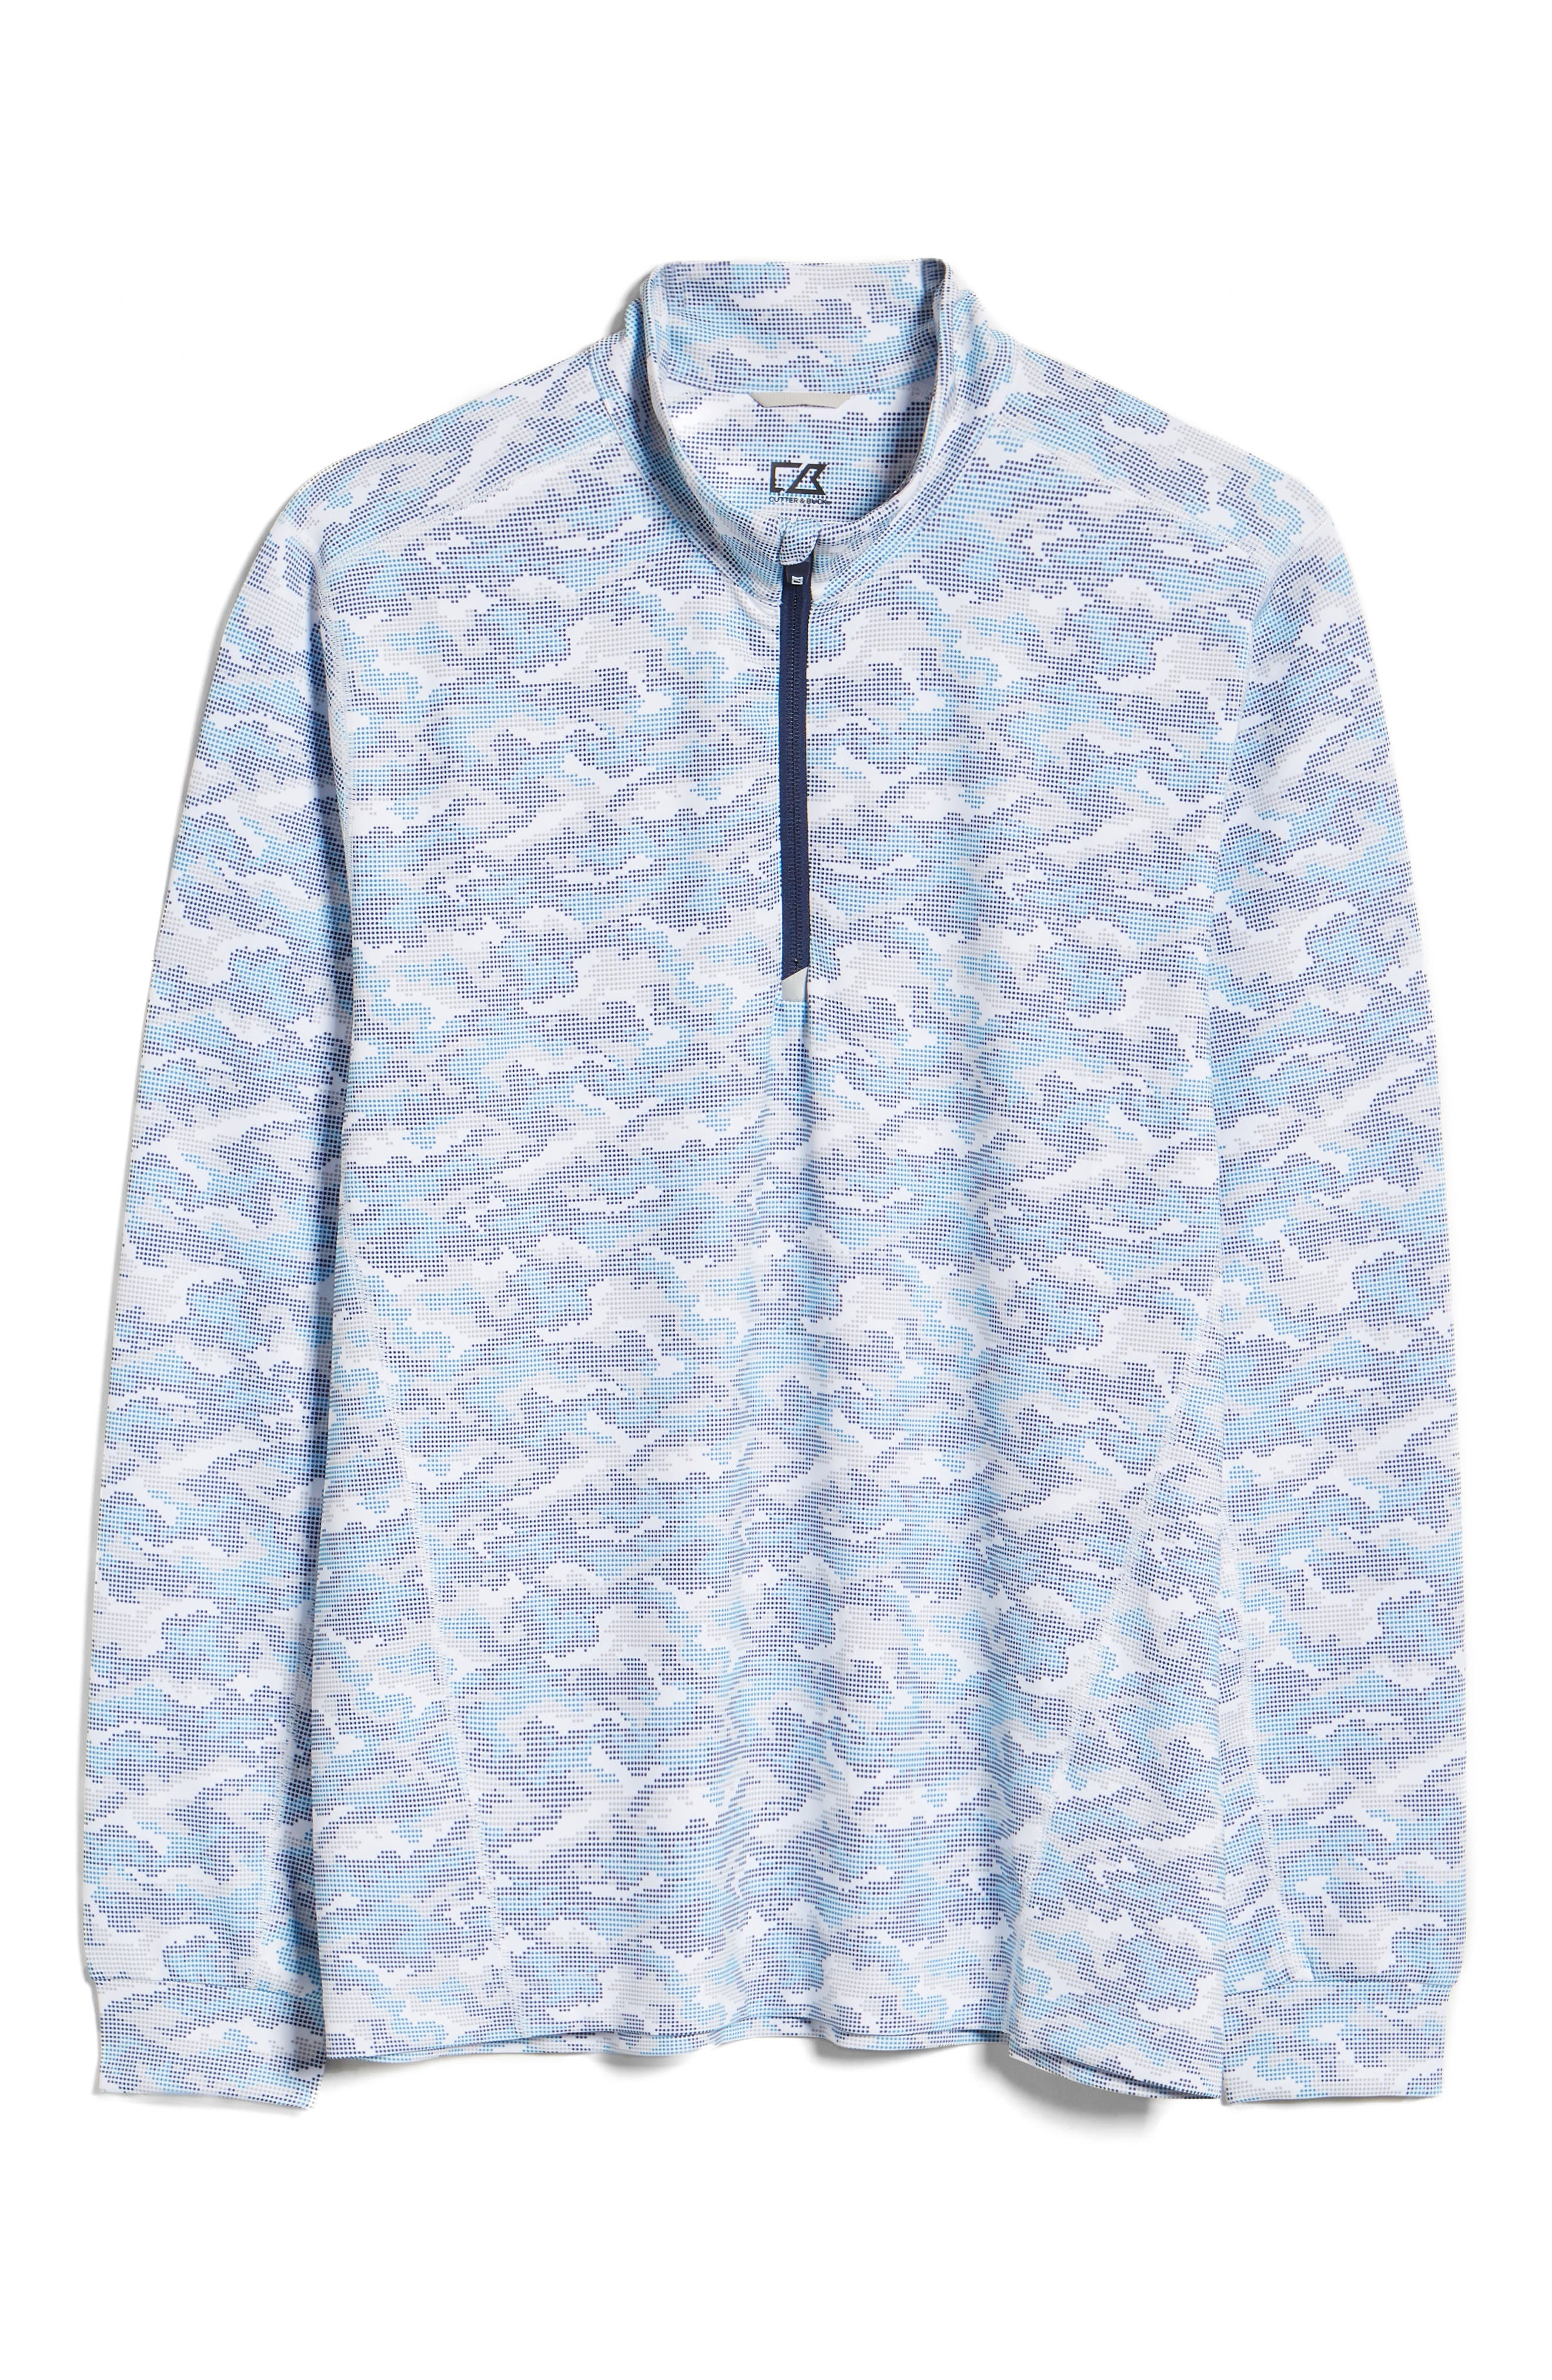 Men s Cutter amp Buck Traverse Camo Print Quarter Zip Performance Pullover